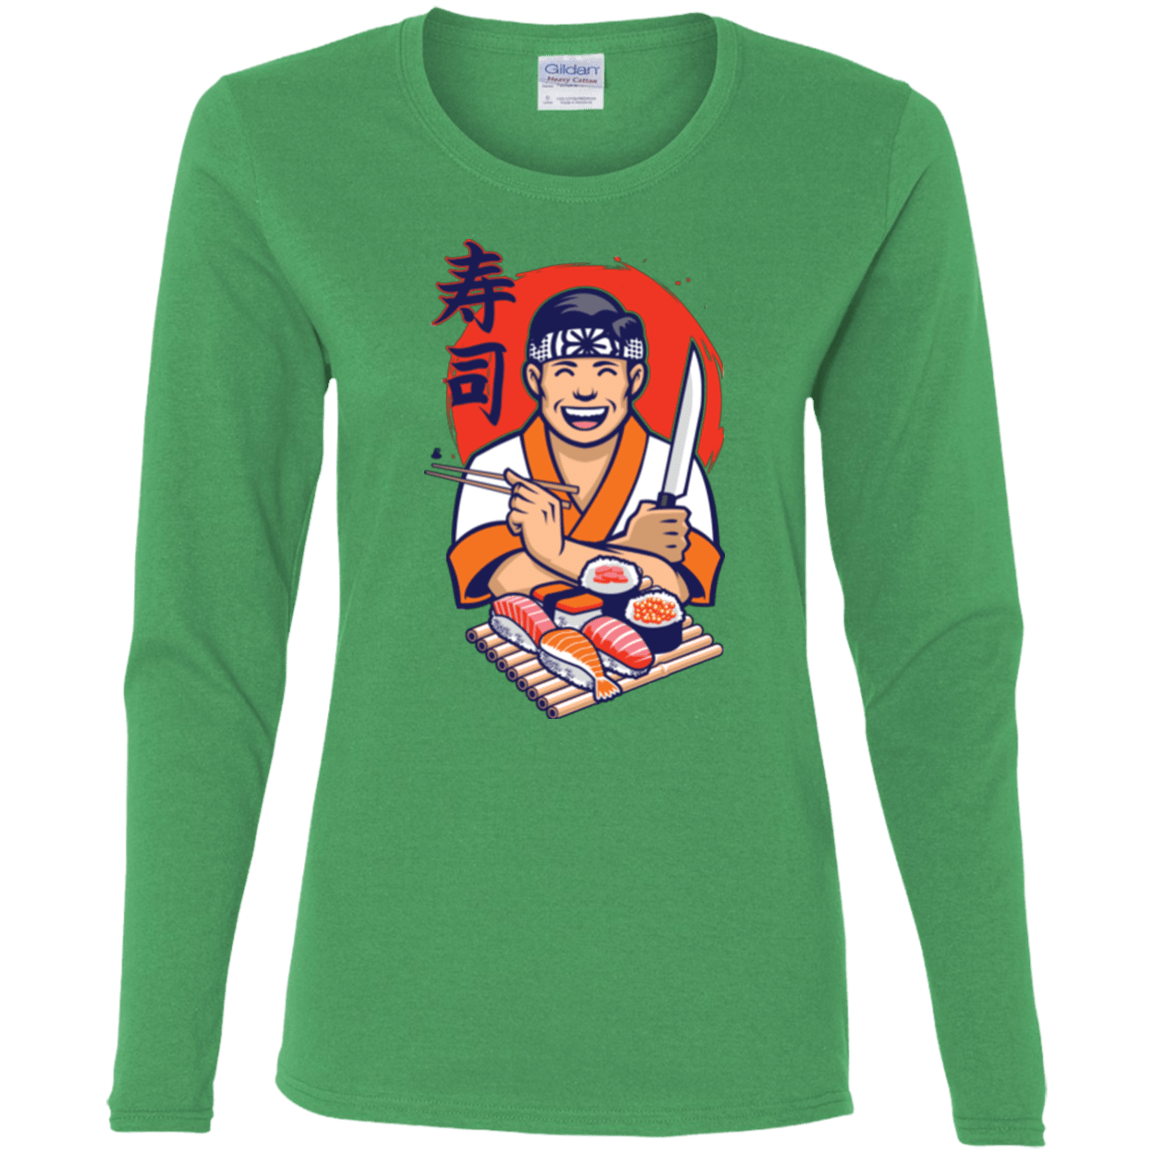 T-Shirts Irish Green / S DANIEL SAN SUSHI Women's Long Sleeve T-Shirt